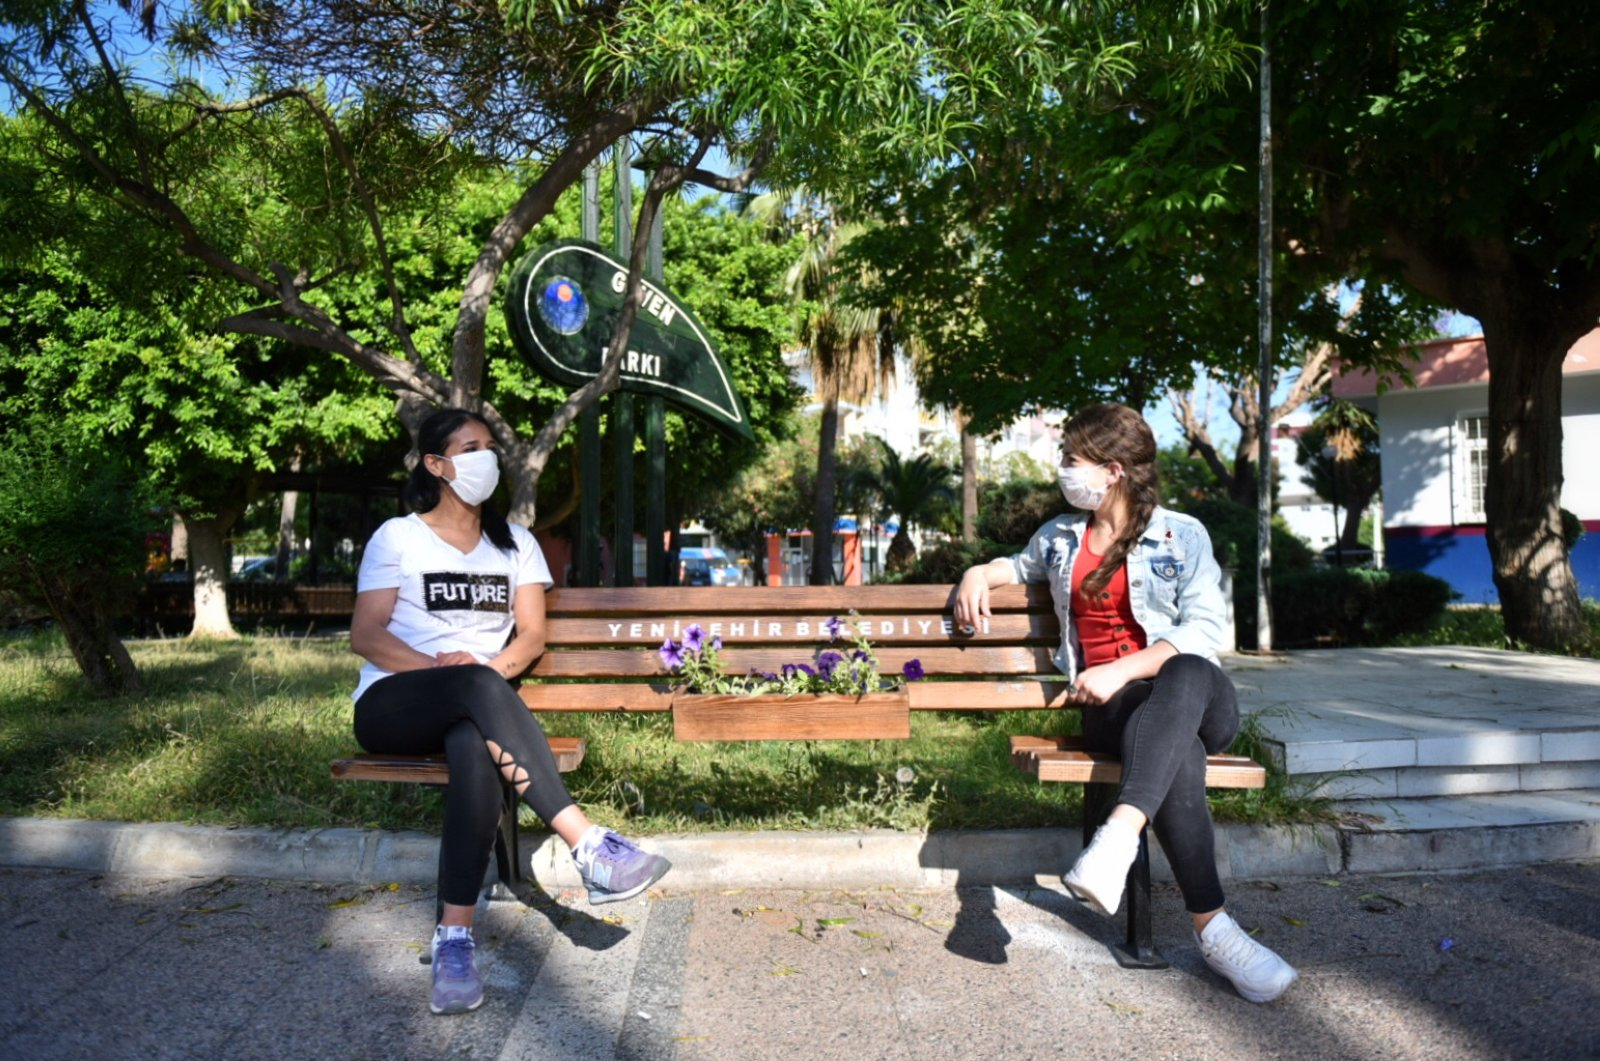 Two women sit on a bench designed to encourage social distancing amid measures to curb the spread of COVID-19, Mersin, Turkey, May 10, 2020. (AA Photo)